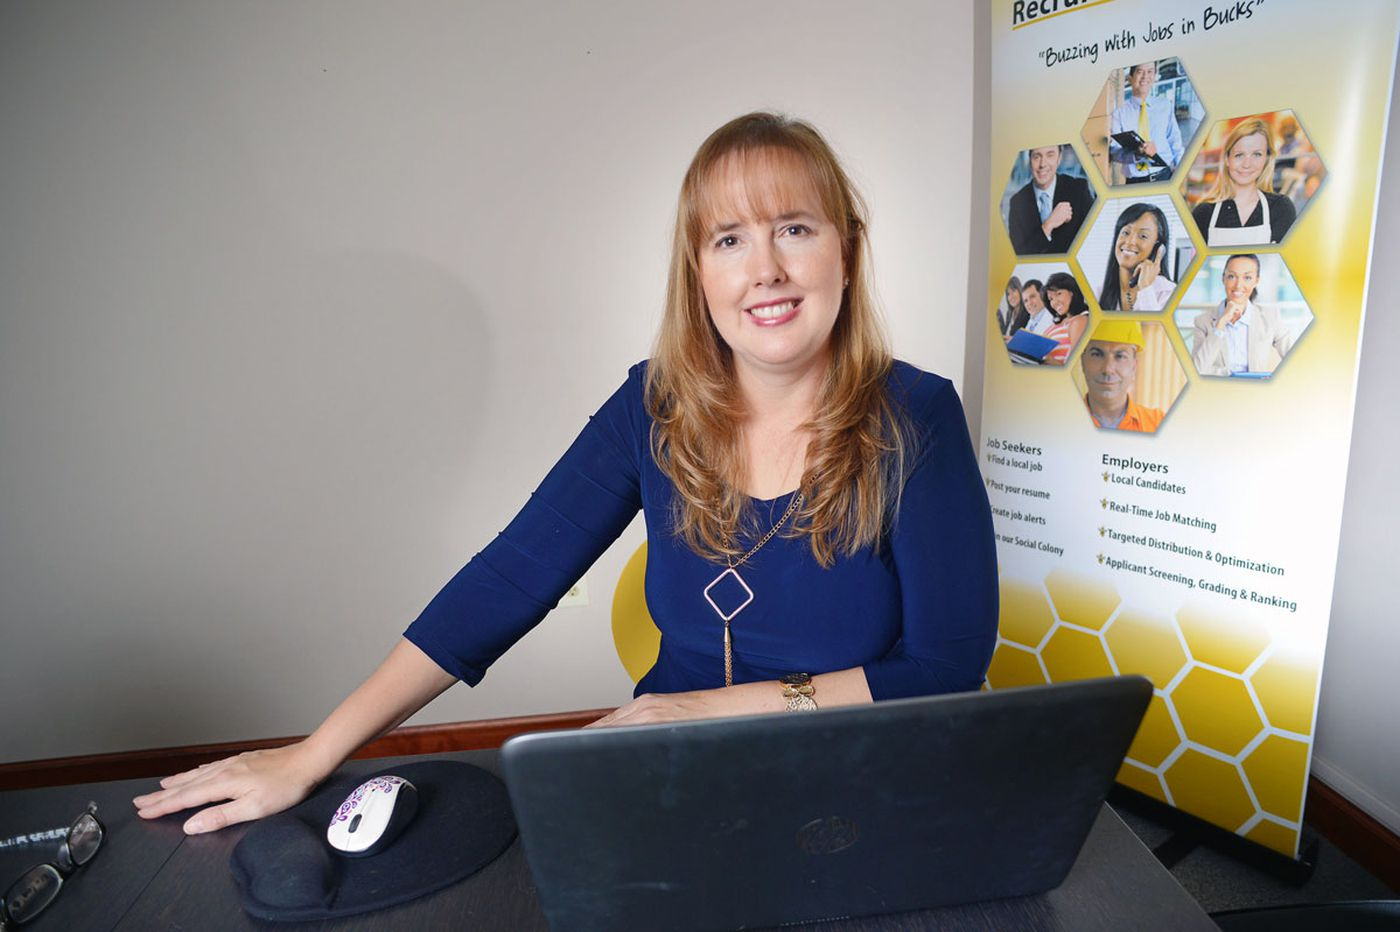 How the beBee social network aims to get you hired